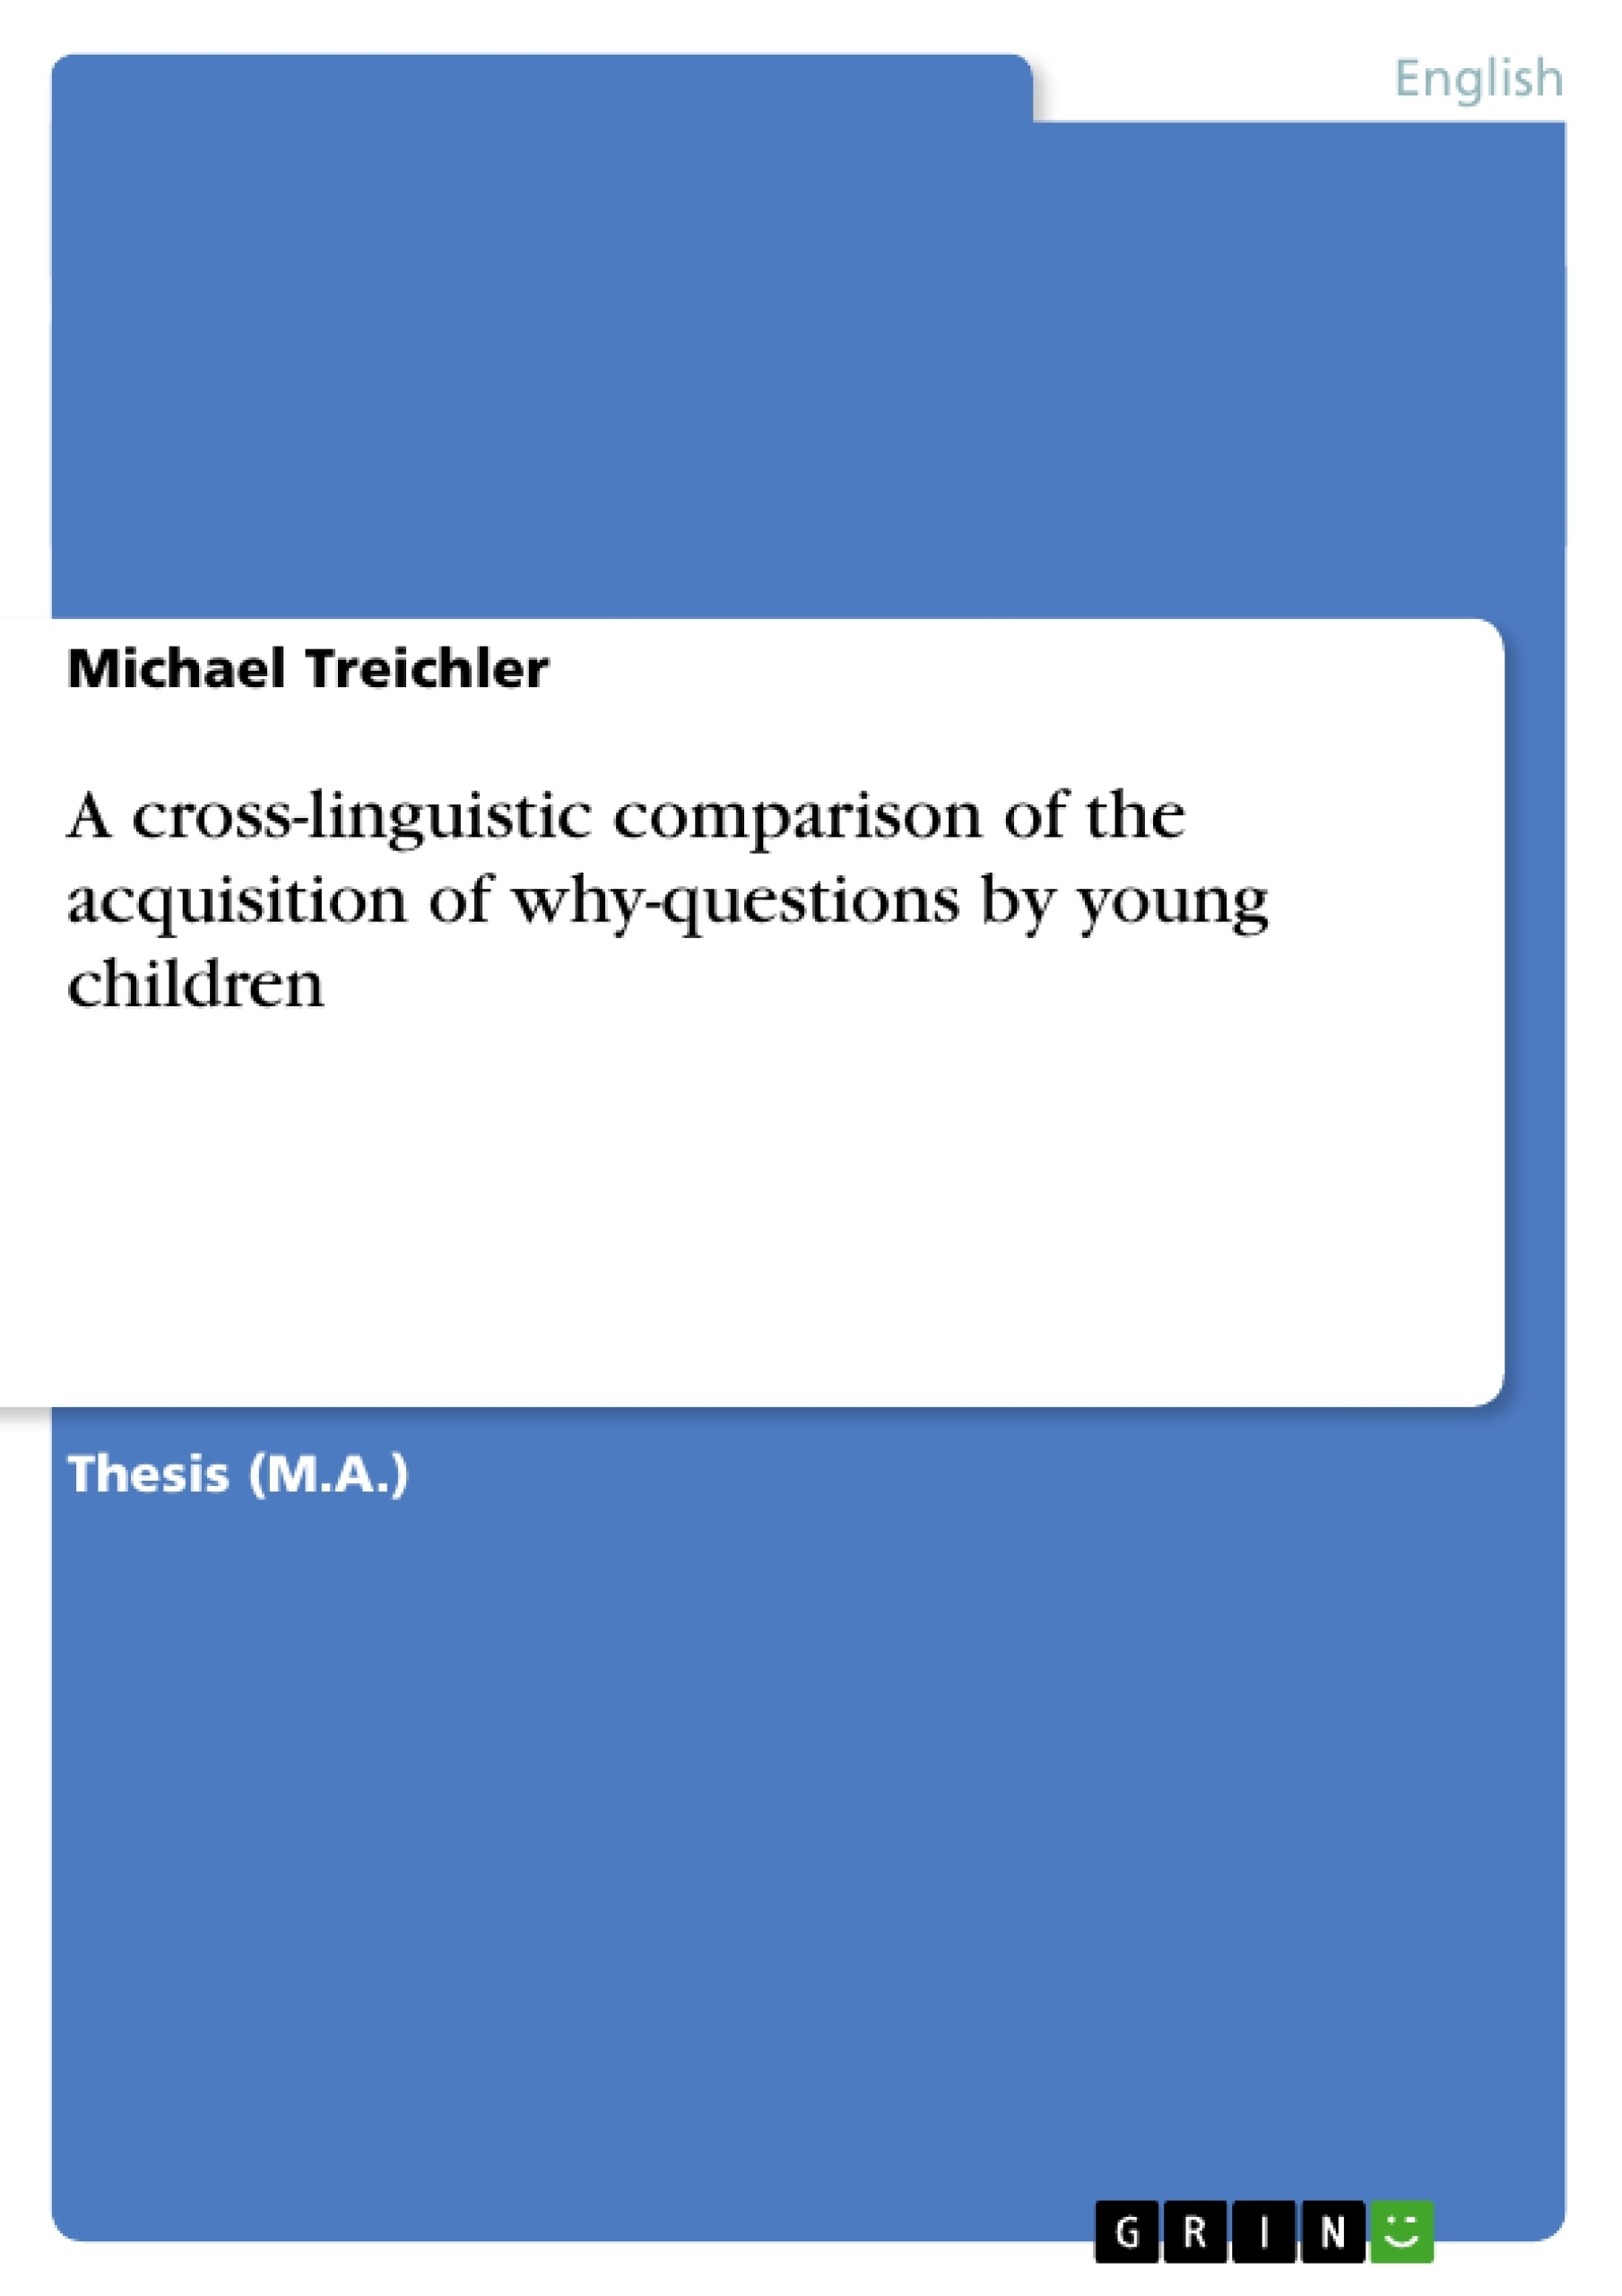 Title: A cross-linguistic comparison of the acquisition of why-questions by young children